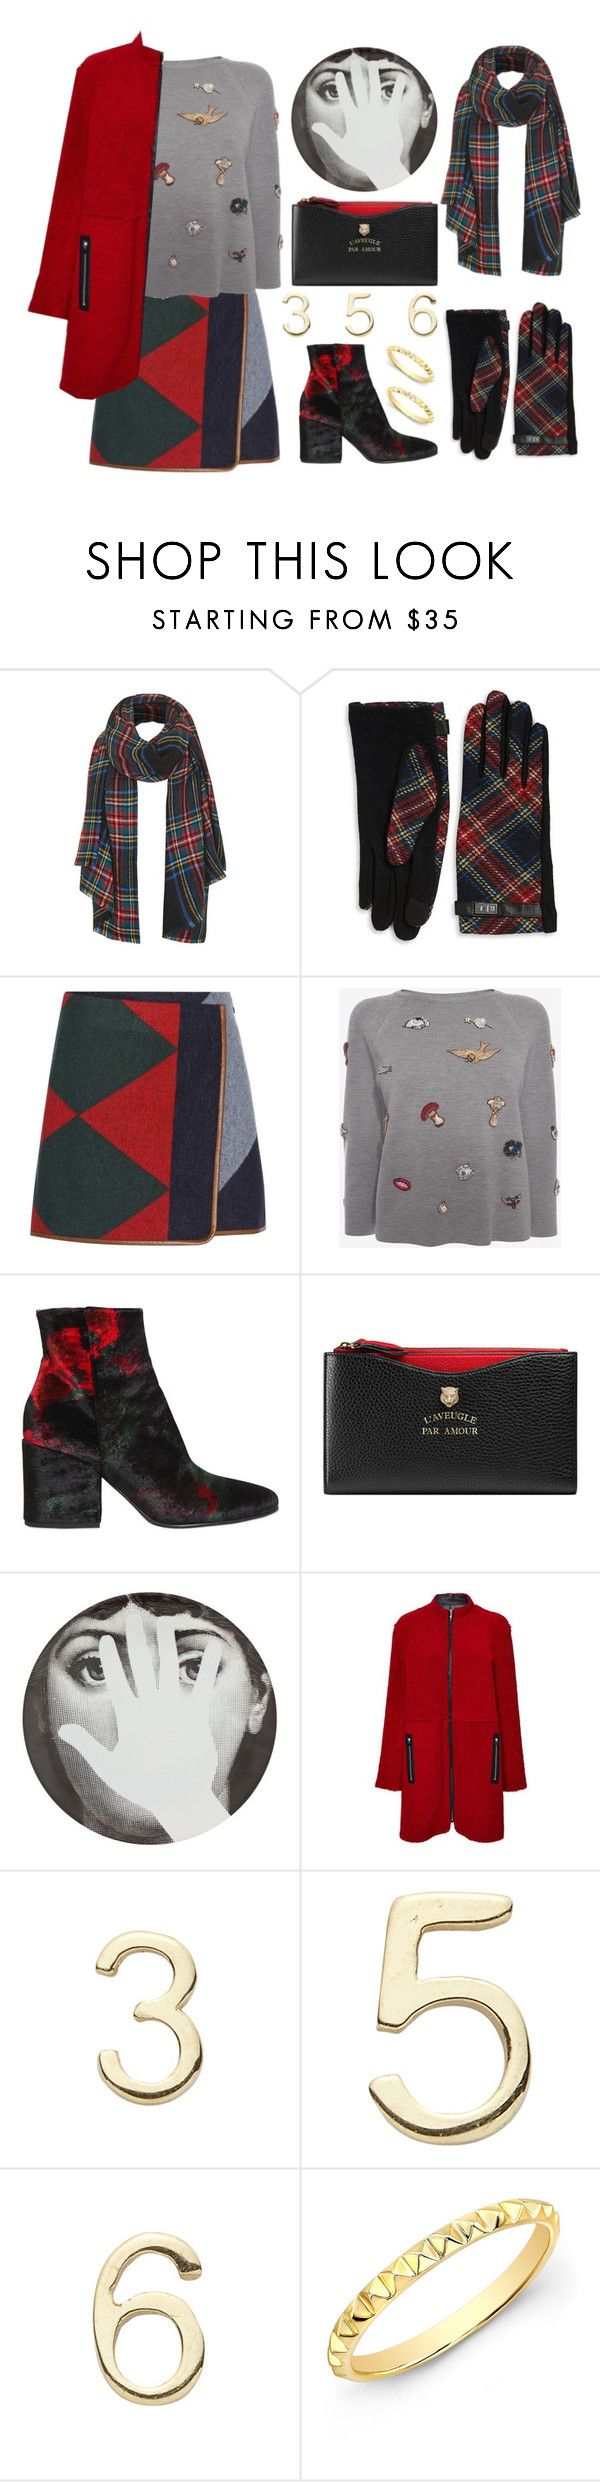 """""""Wool Winter"""" by cherieaustin ❤ liked on Polyvore featuring Topshop, Lauren Ralph Lauren, Tory Burch, Alexander McQueen, Strategia, Gucci, Fornasetti, Sonia Rykiel, Loquet and Anne Sisteron"""